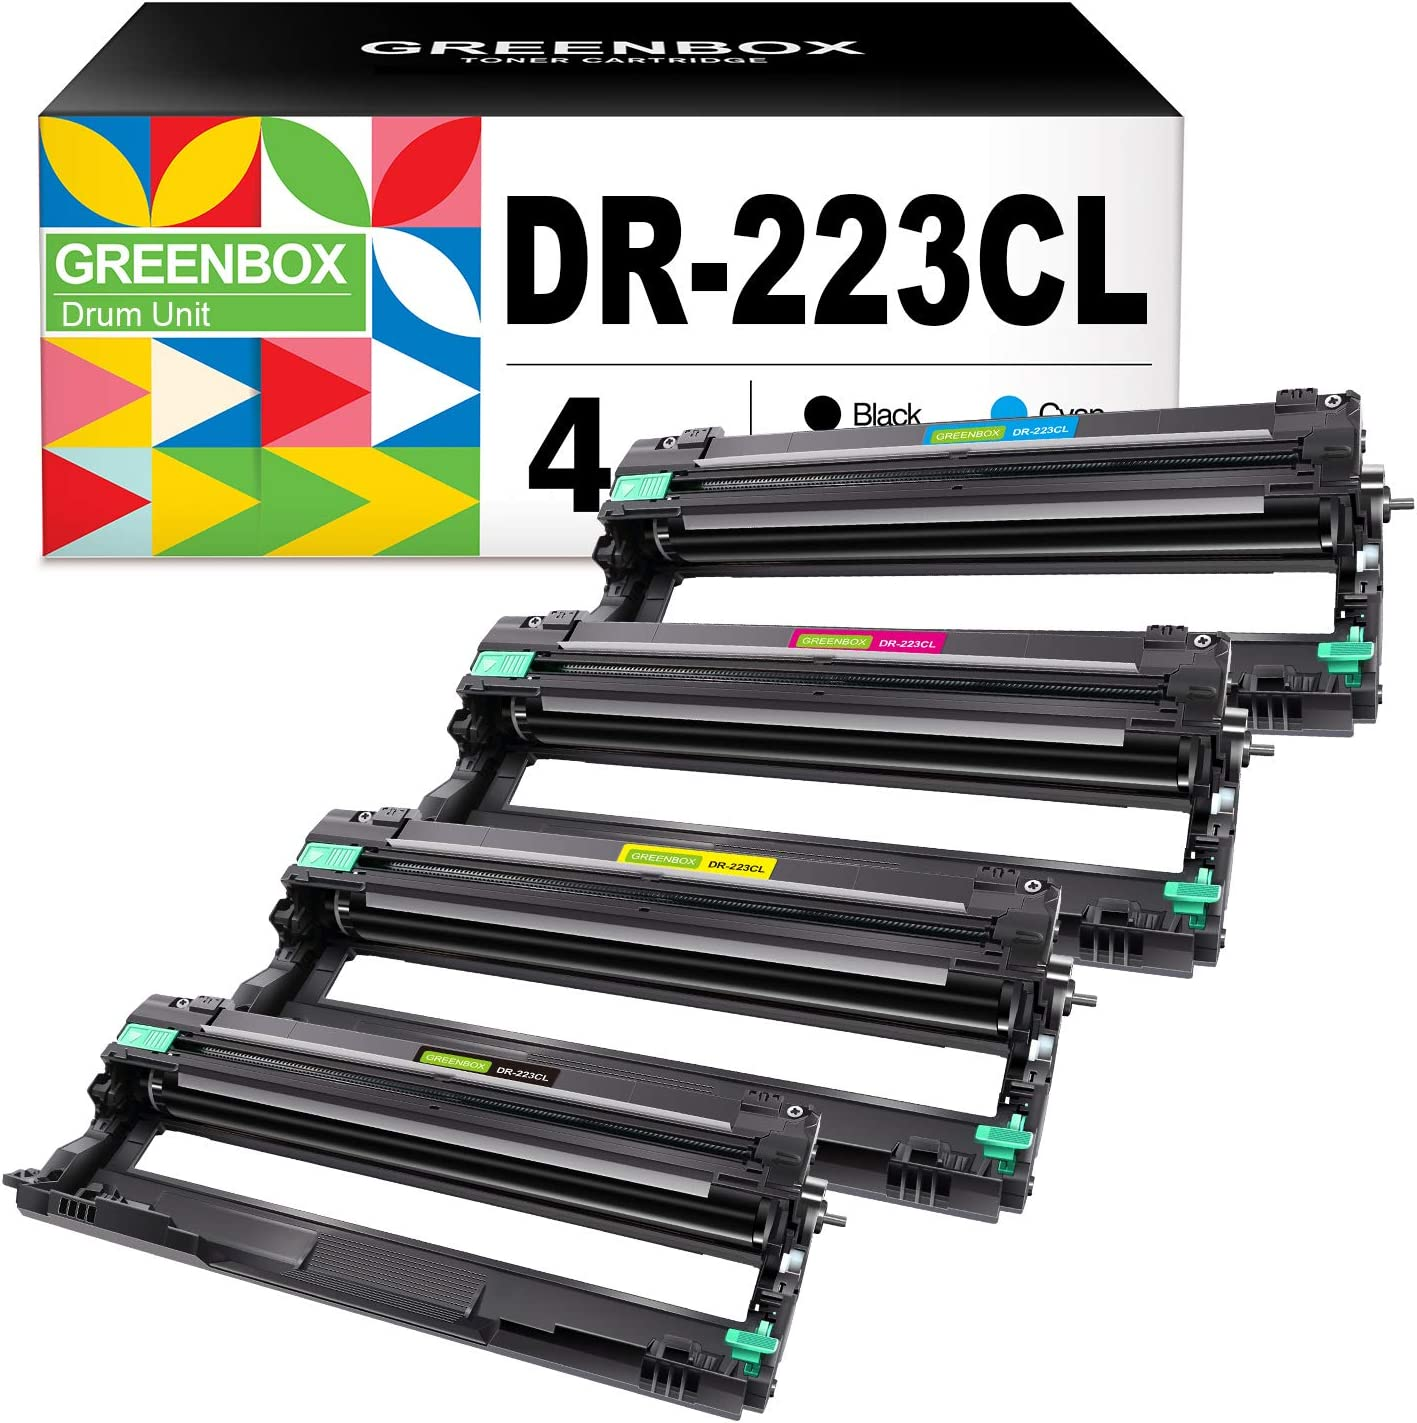 GREENBOX Compatible Drum Unit Replacement for Brother DR223 DR-223 DR223CL DR-223CL for HL-L3210CW HL-L3230CDW HL-L3270CDW HL-L3290CDW MFC-L3710CW MFC-L3750CDW MFC-L3770CDW Printer Tray (4 Pack)